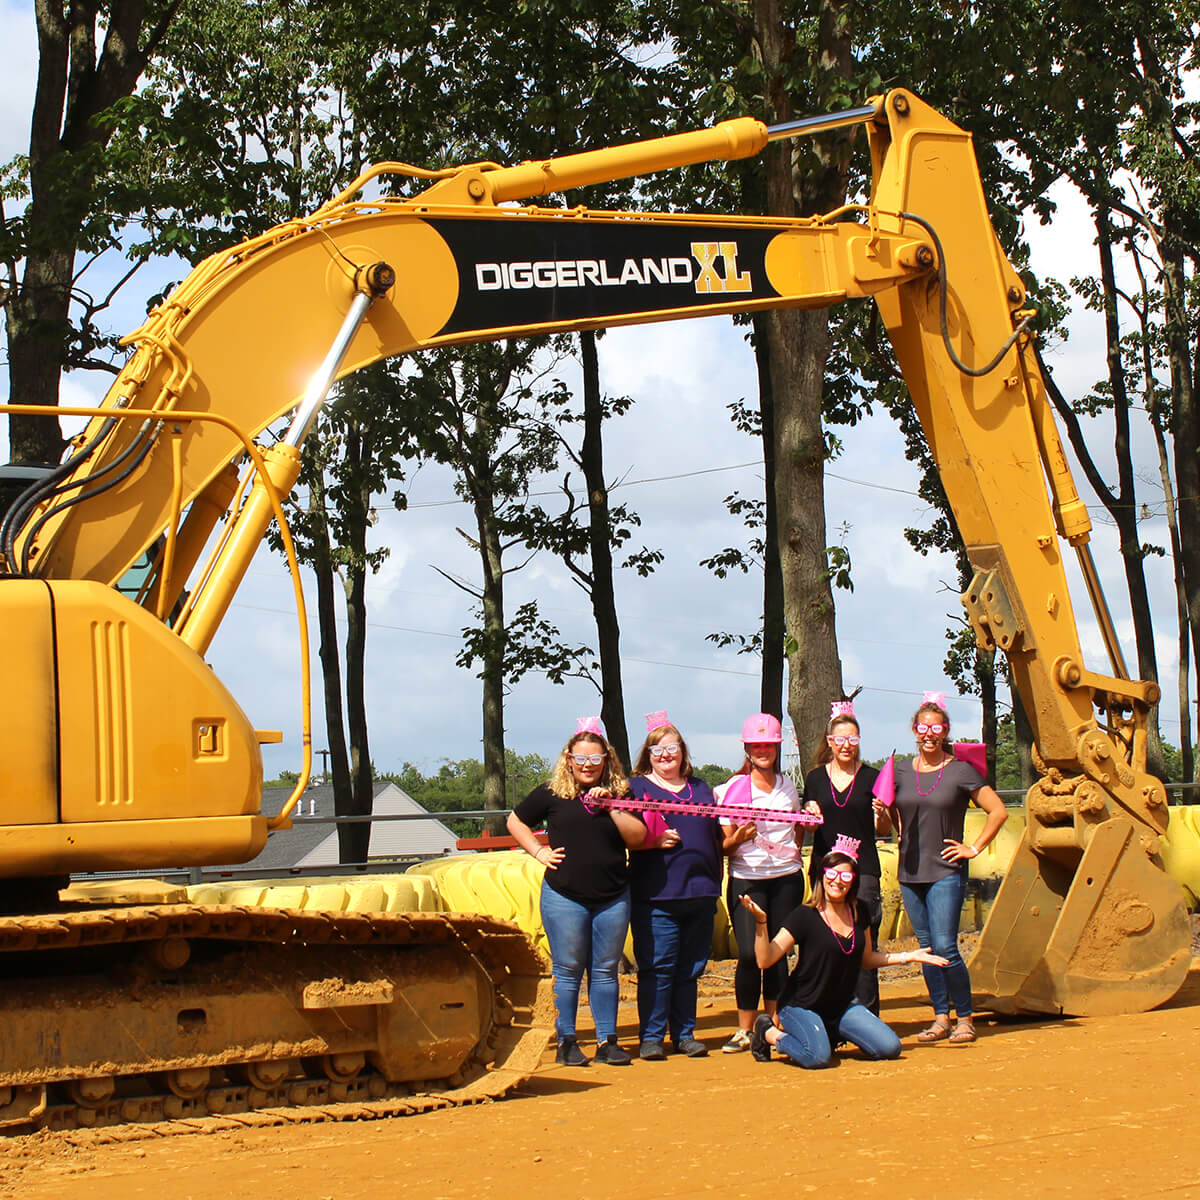 Bachelorette party at Diggerland XL